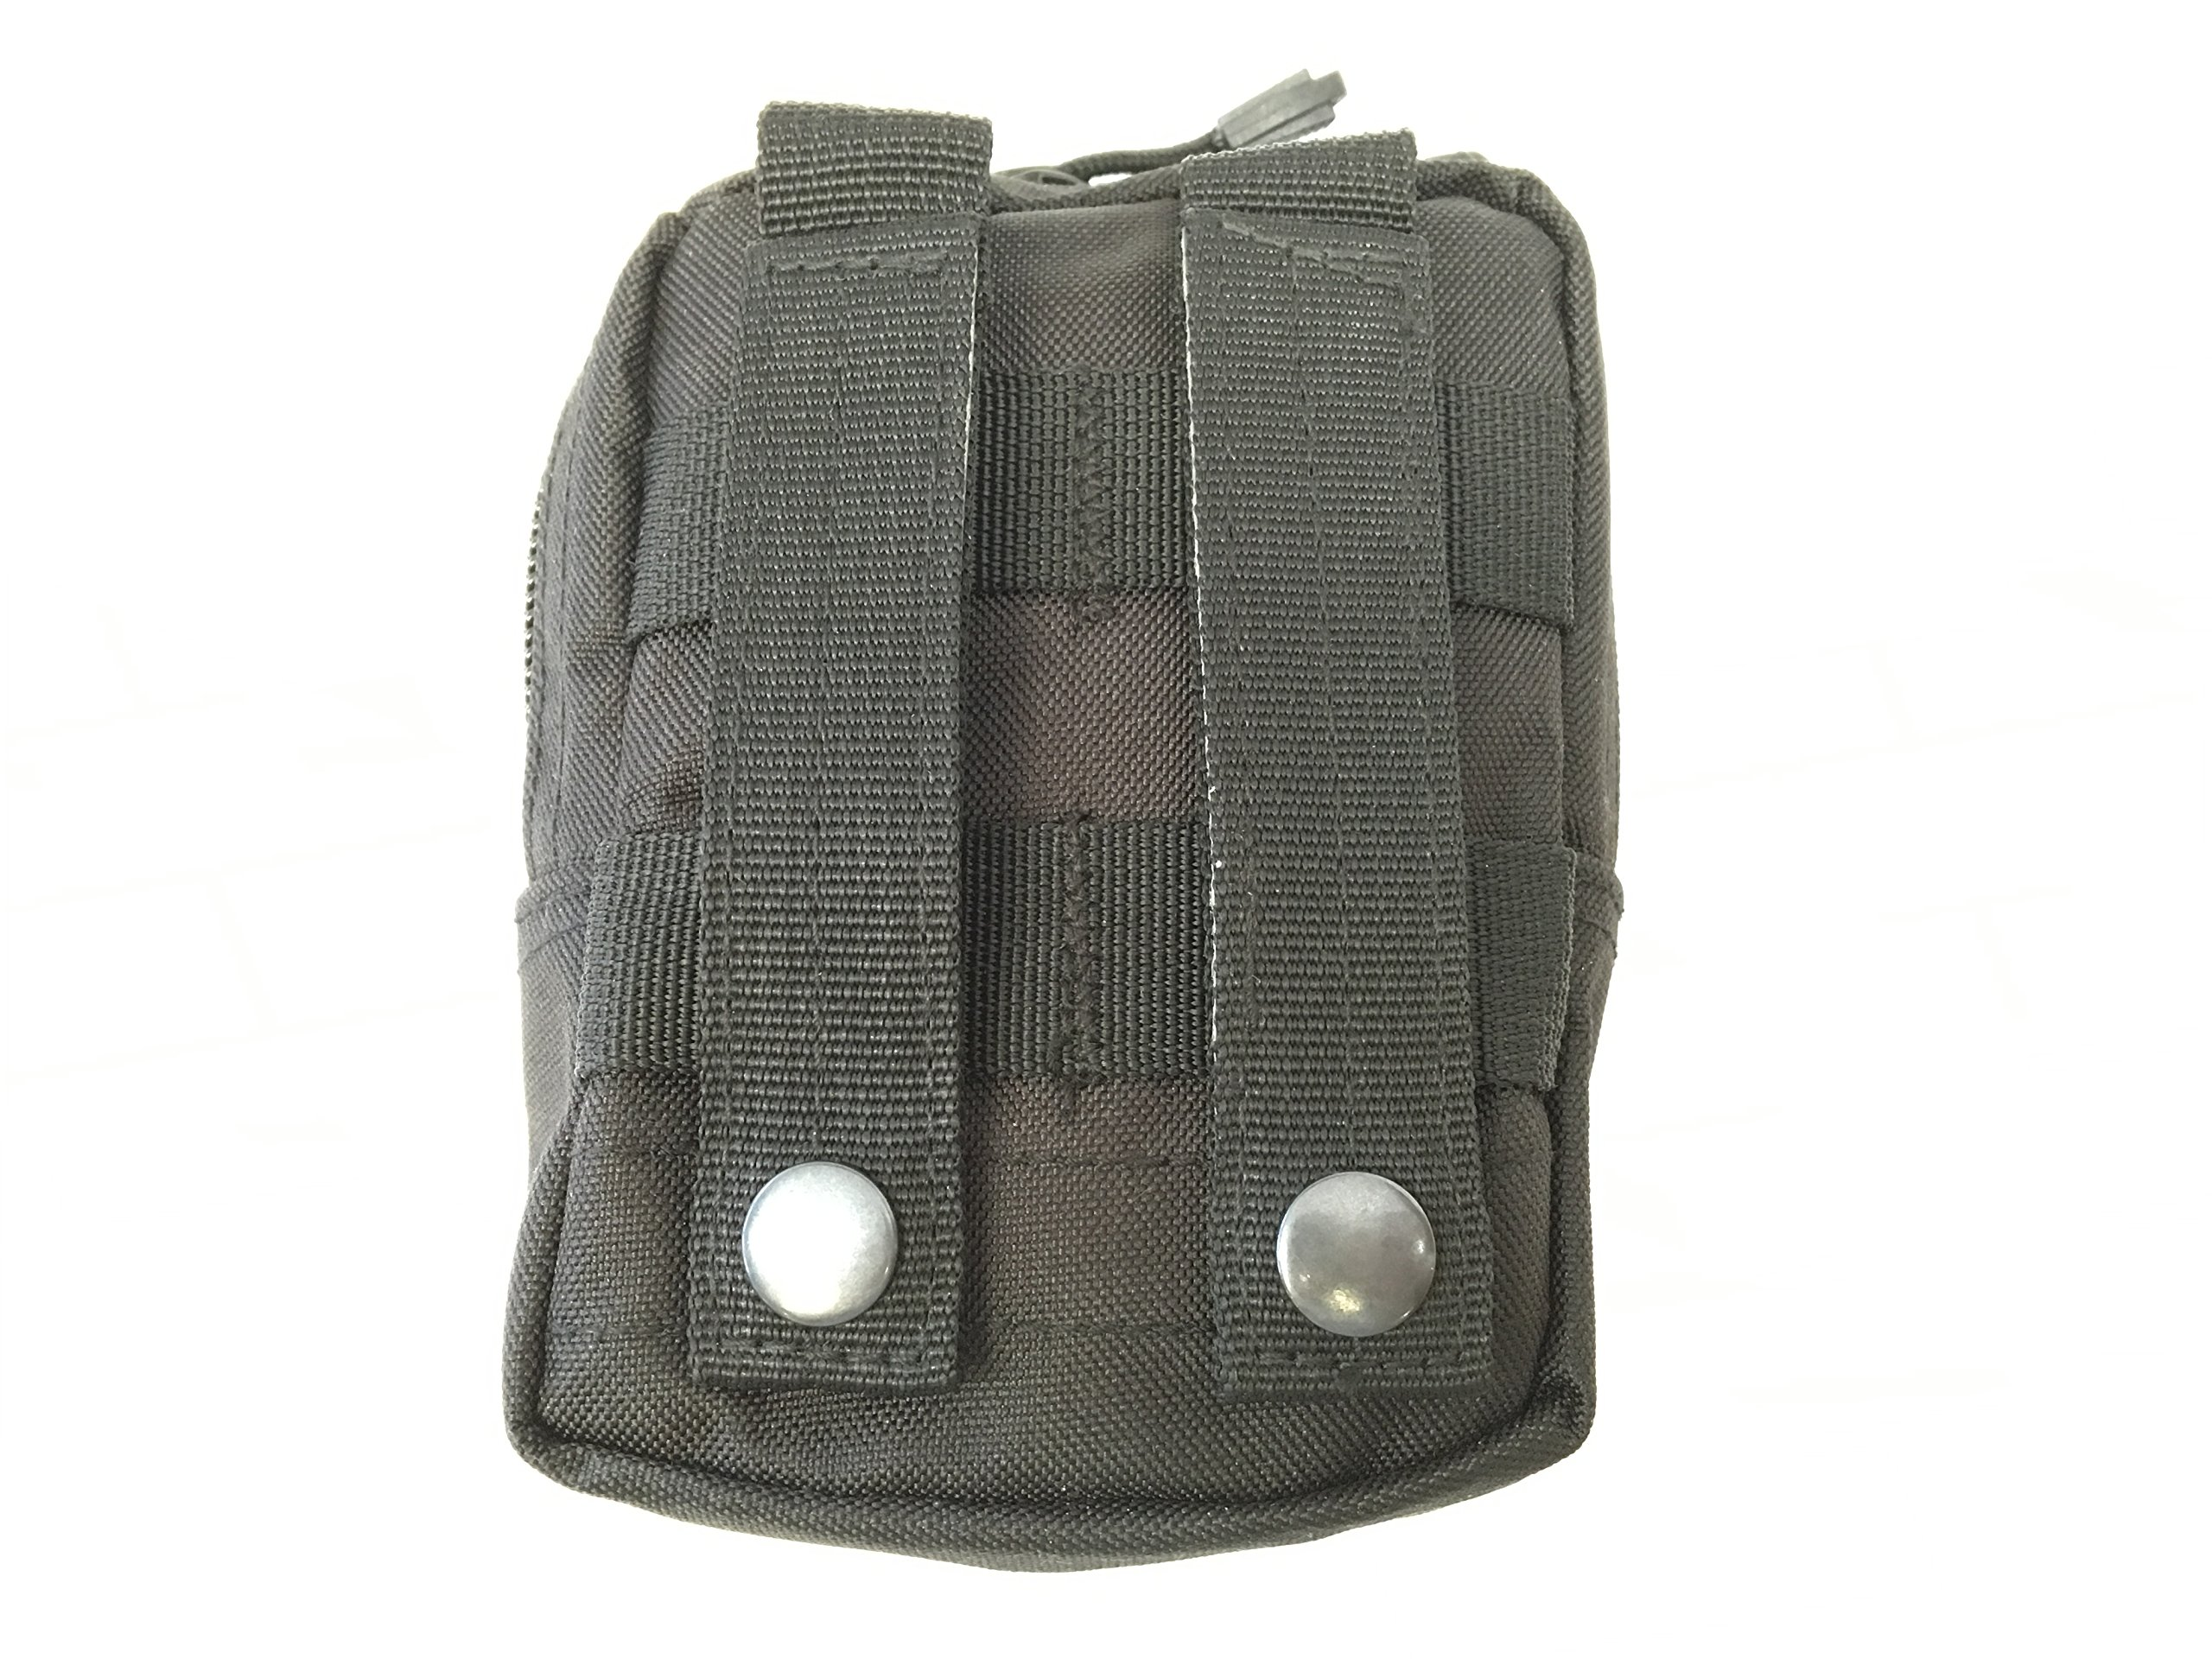 IFAK (Individual First Aid Kit) in MOLLE CASE